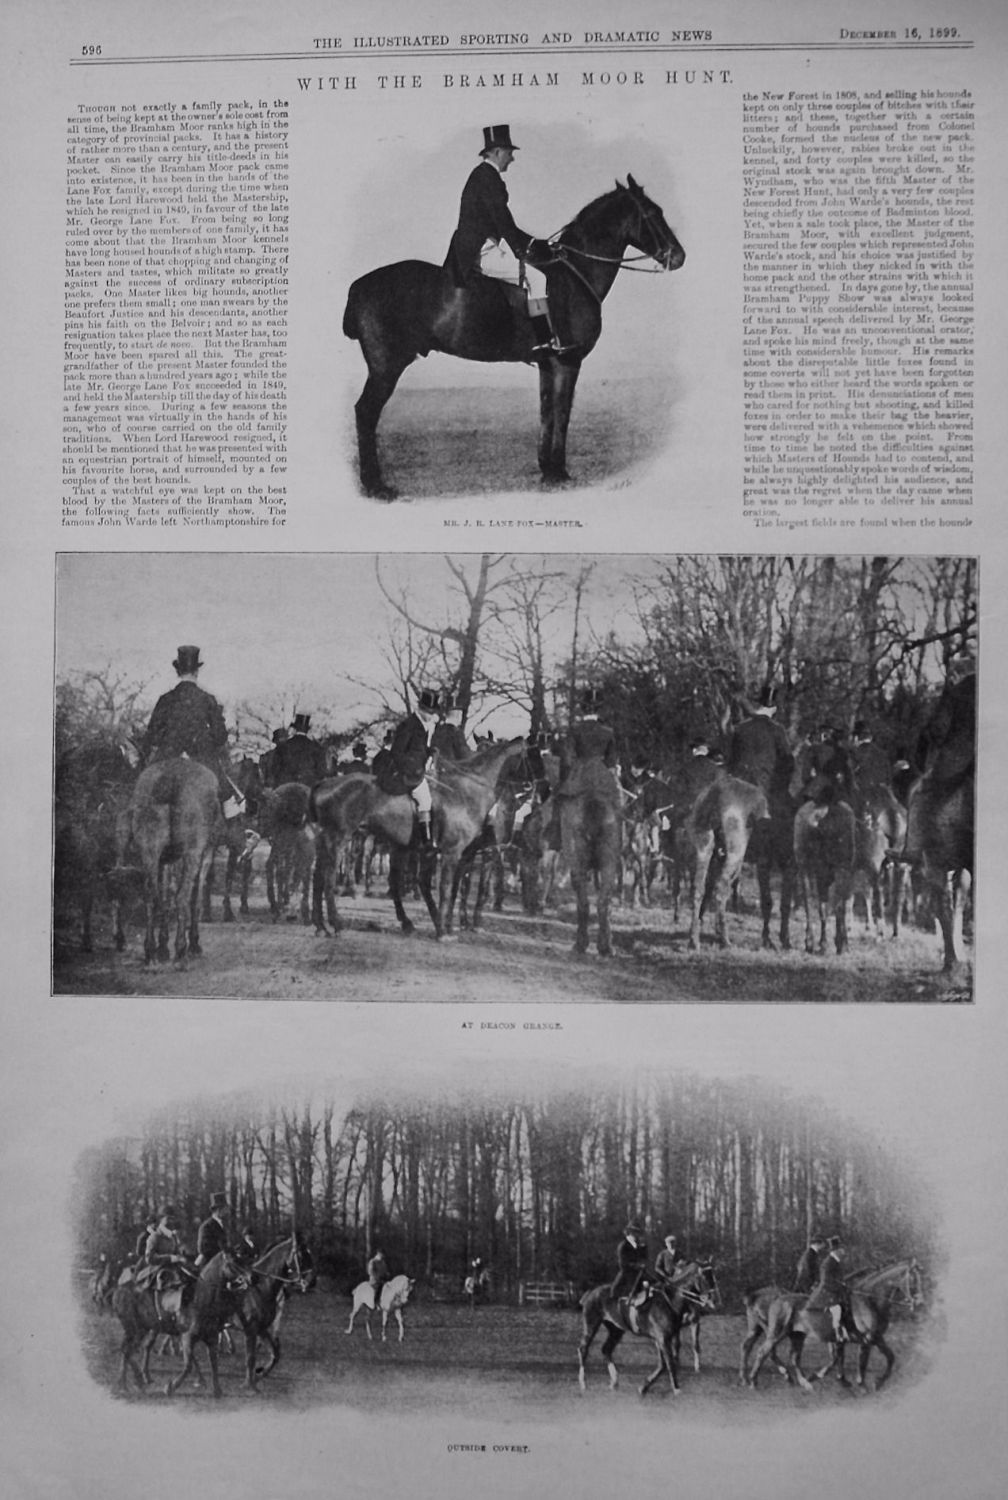 With the Bramham Moor Hunt. 1899